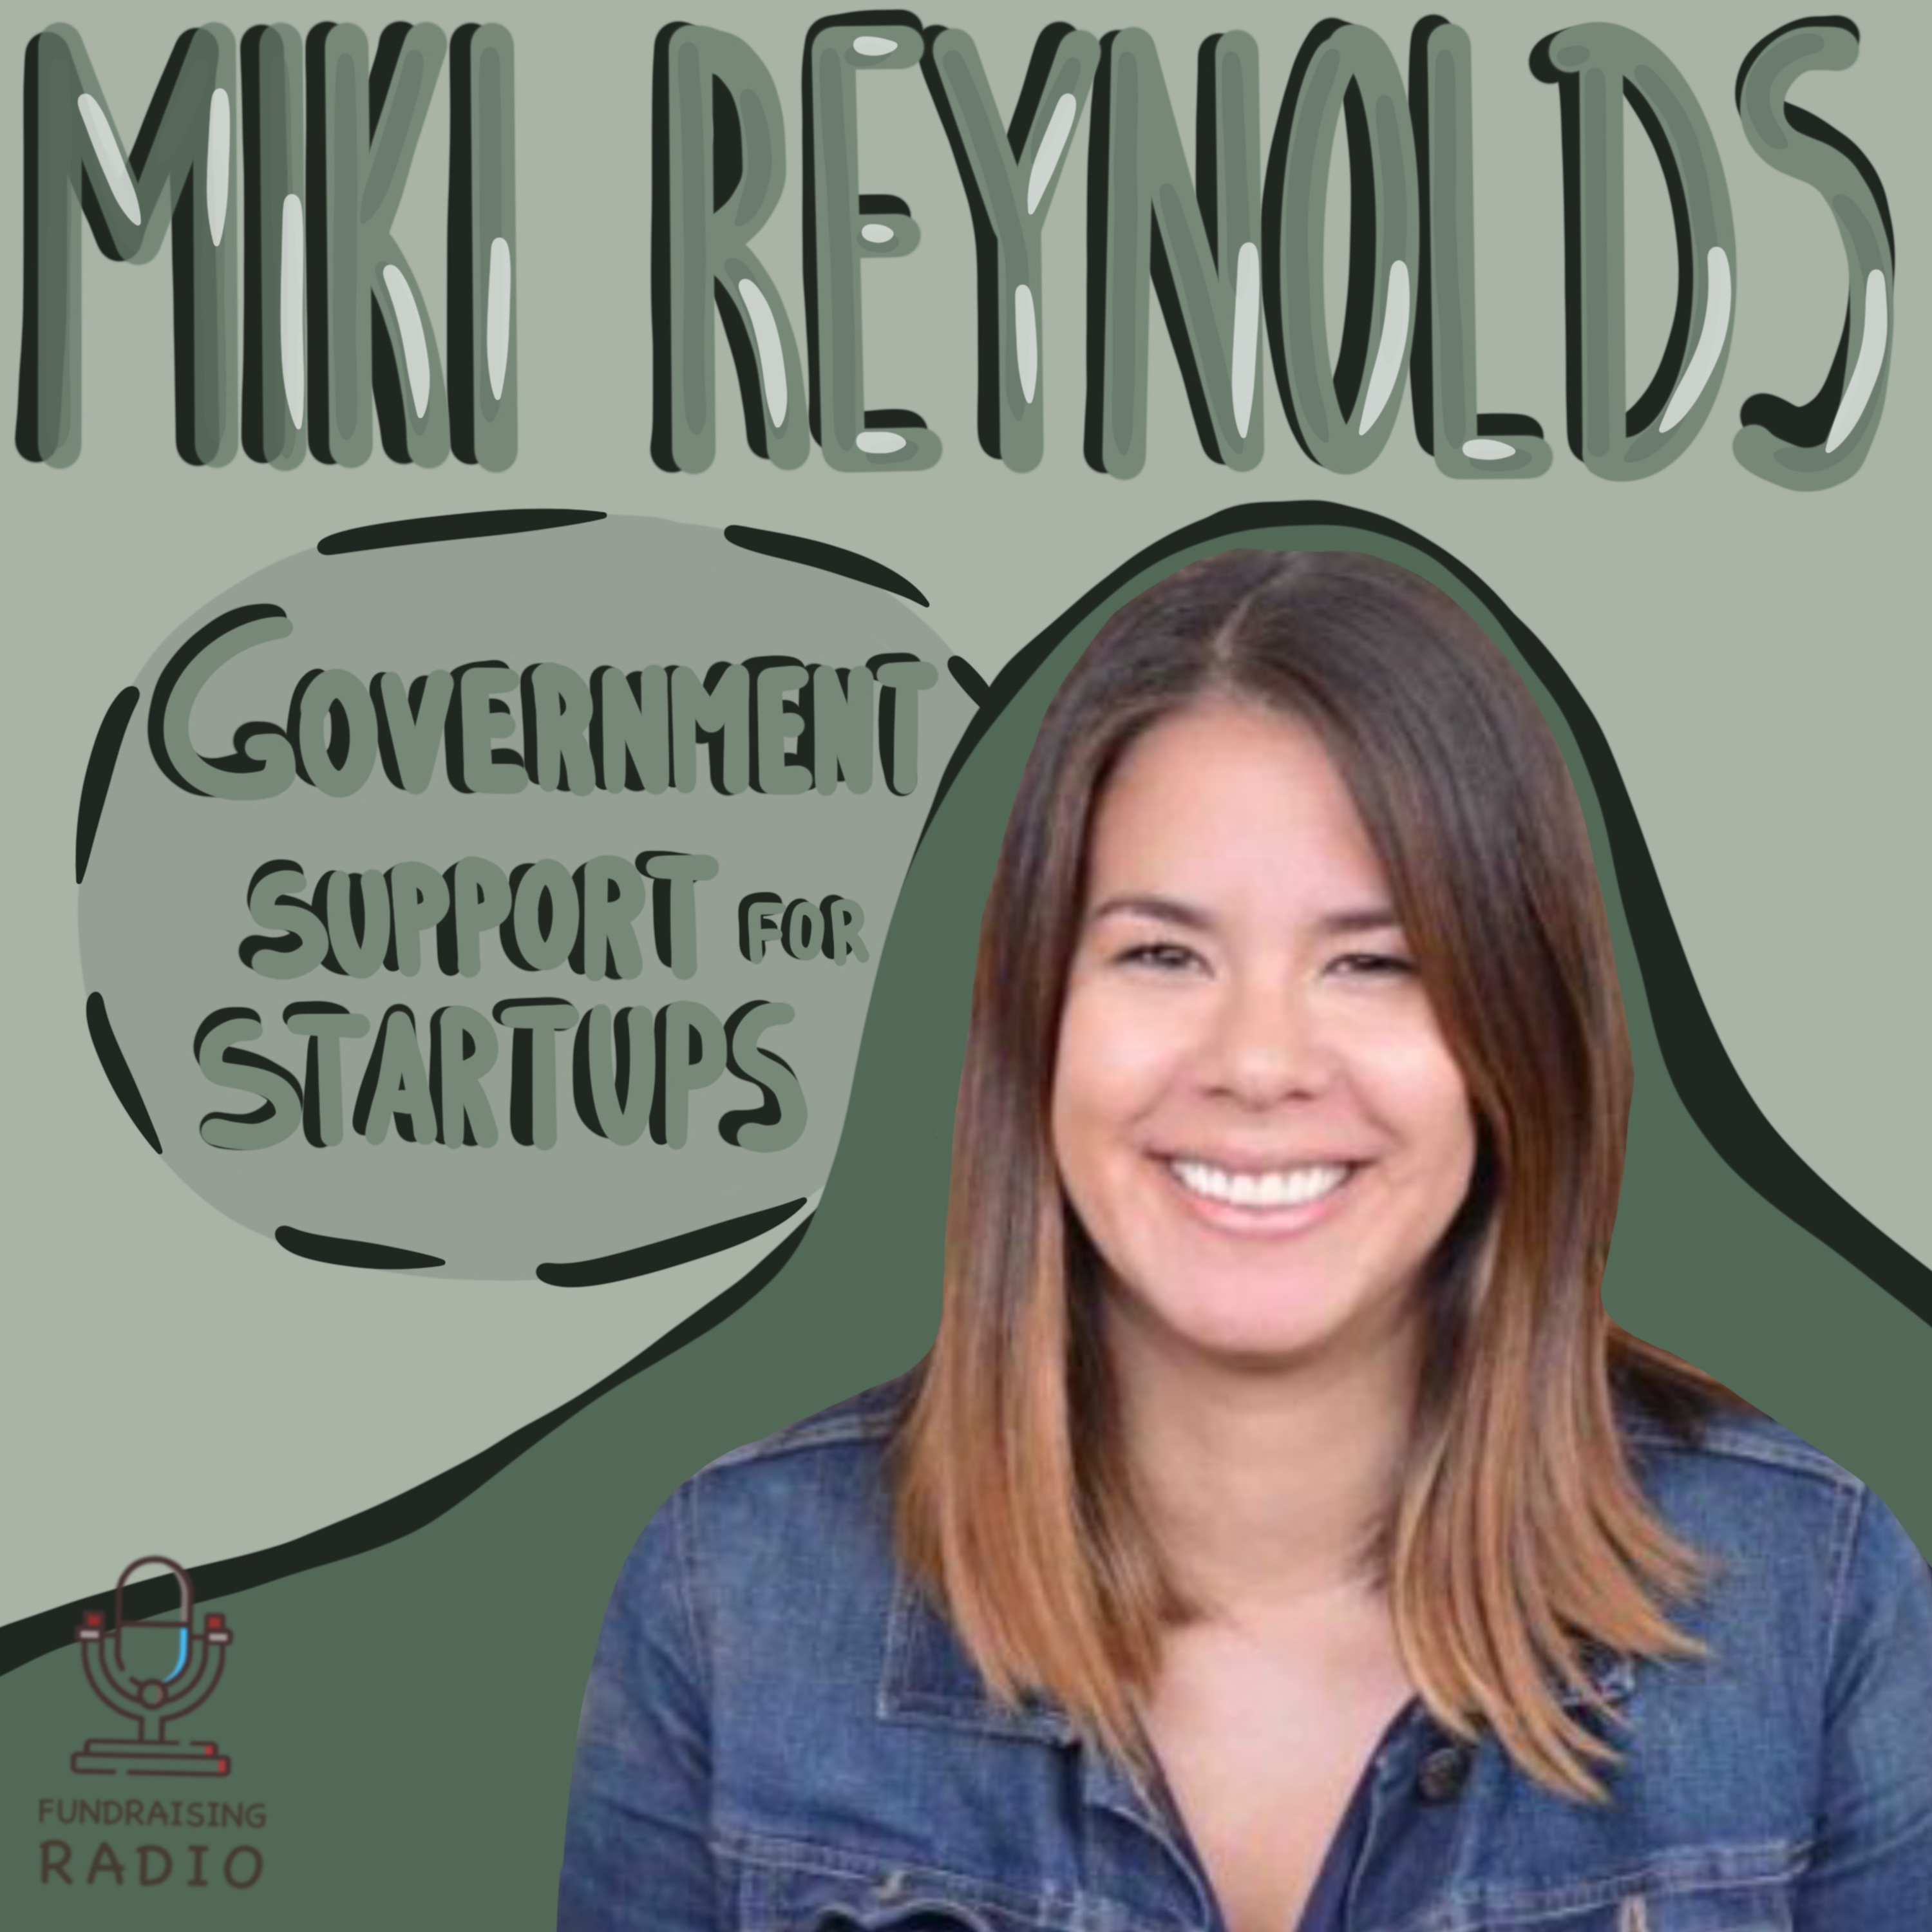 Free accelerators and what does the government support mean for startups, by Miki Reynolds.